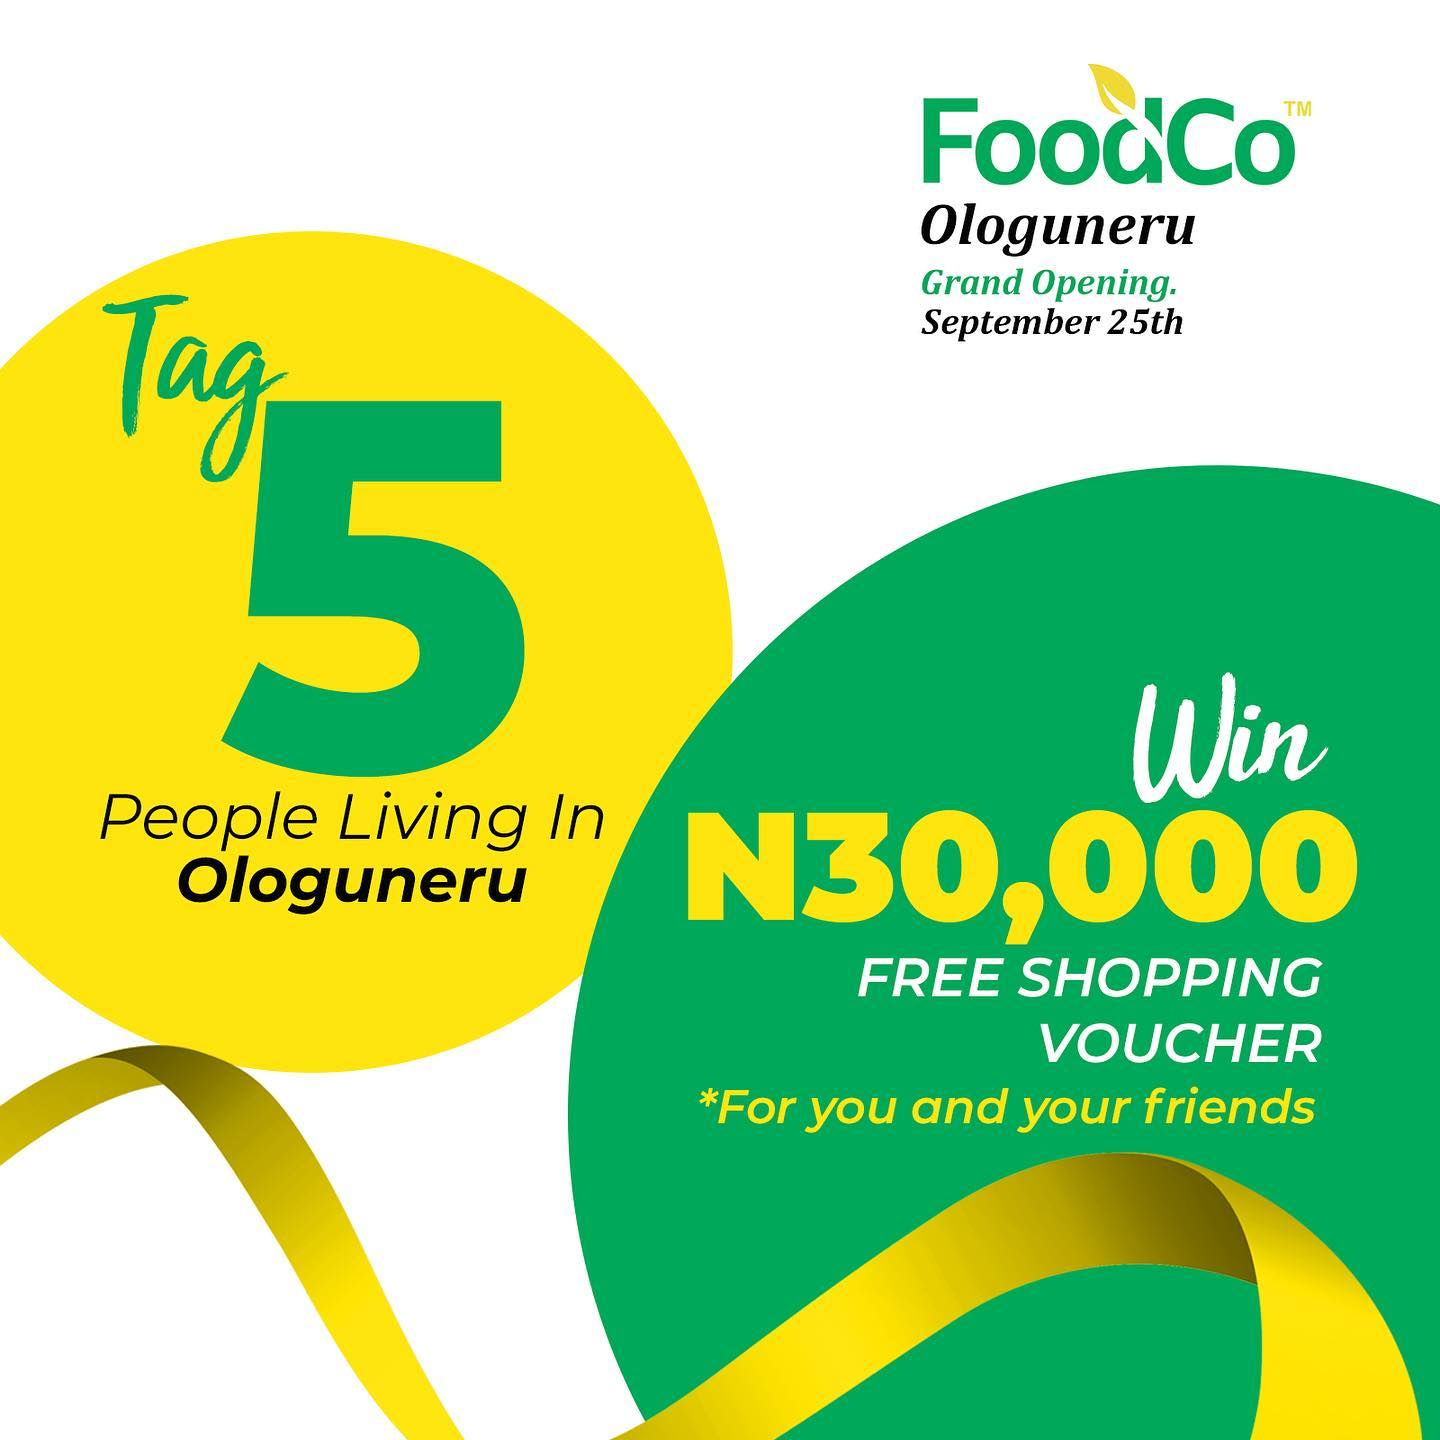 Join the FoodCo N30K Voucher Giveaway.